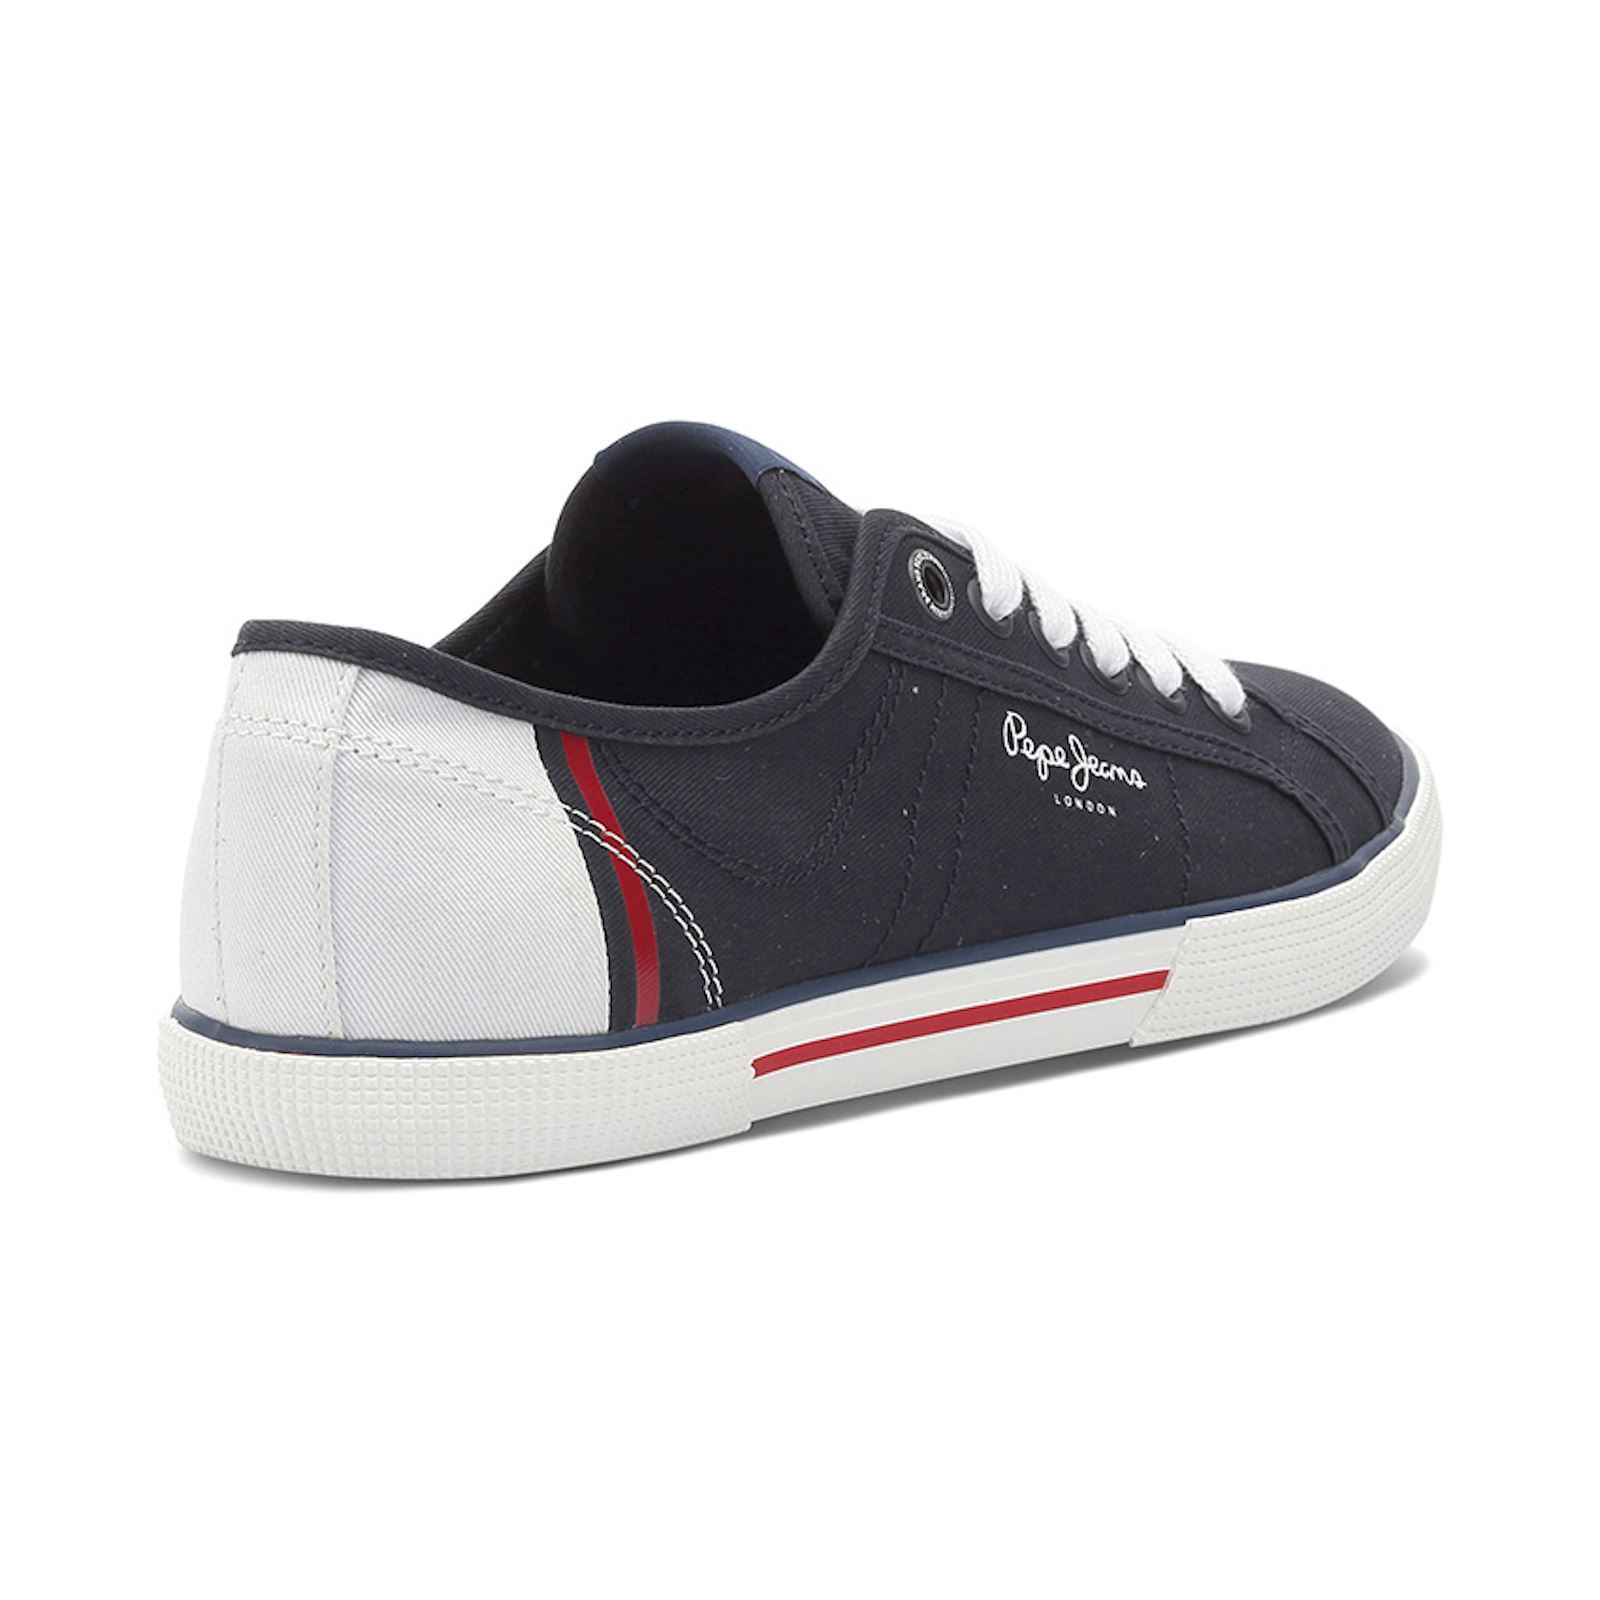 Pepe jeans Chaussures Baskets Aberman bleues Pepe jeans 4irW7MT